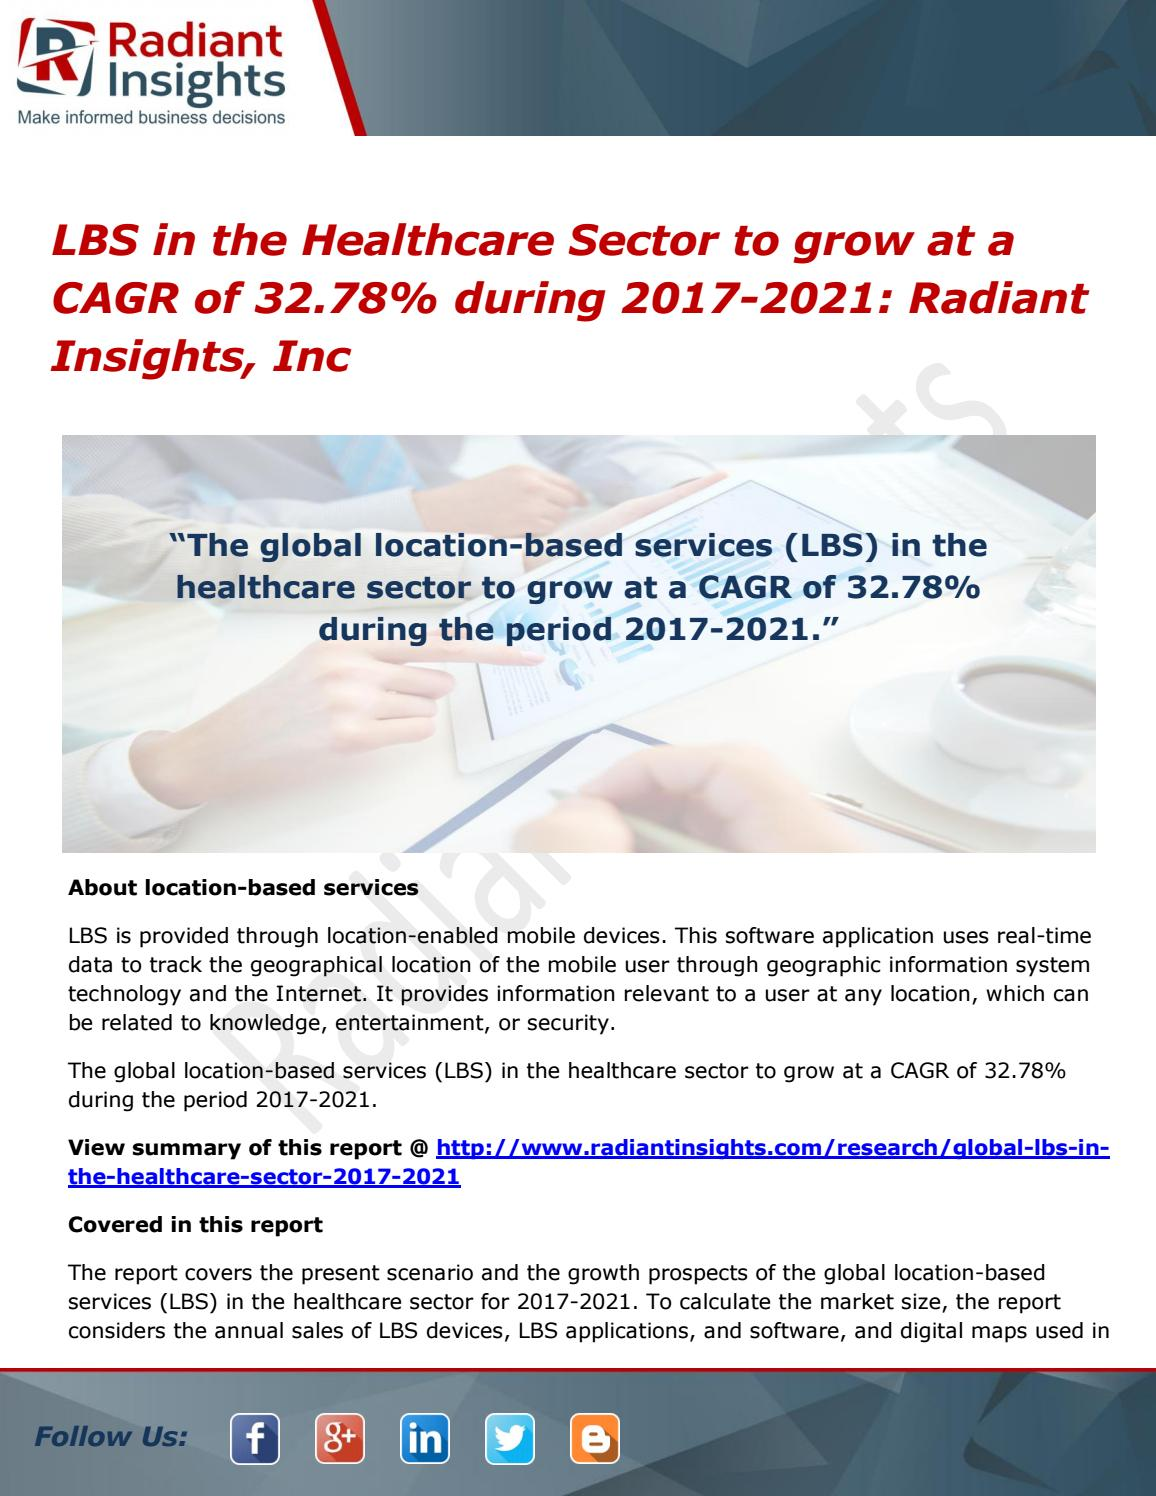 Lbs in the healthcare sector is Poised to Reach cagr of 32